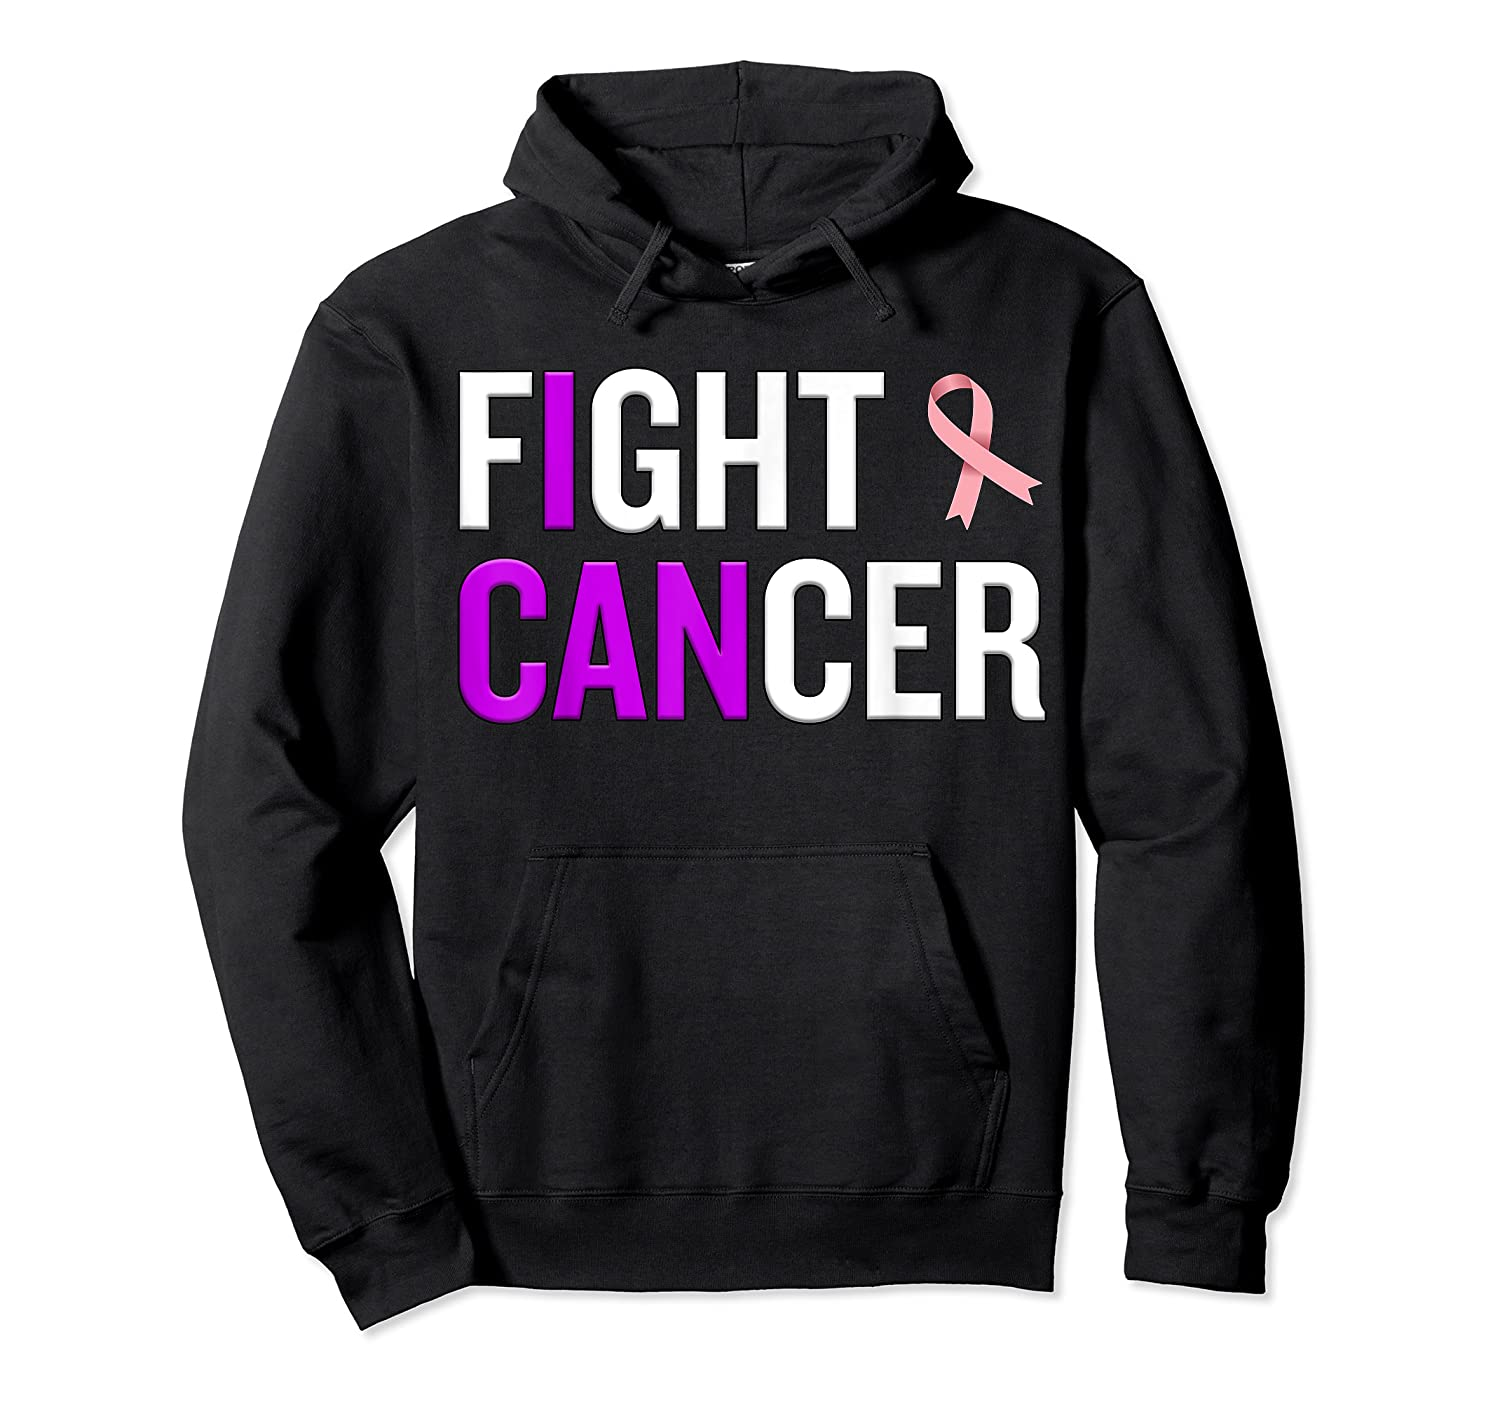 Breast Cancer Month Awareness Gift For Survivors Warriors T Shirt Unisex Pullover Hoodie